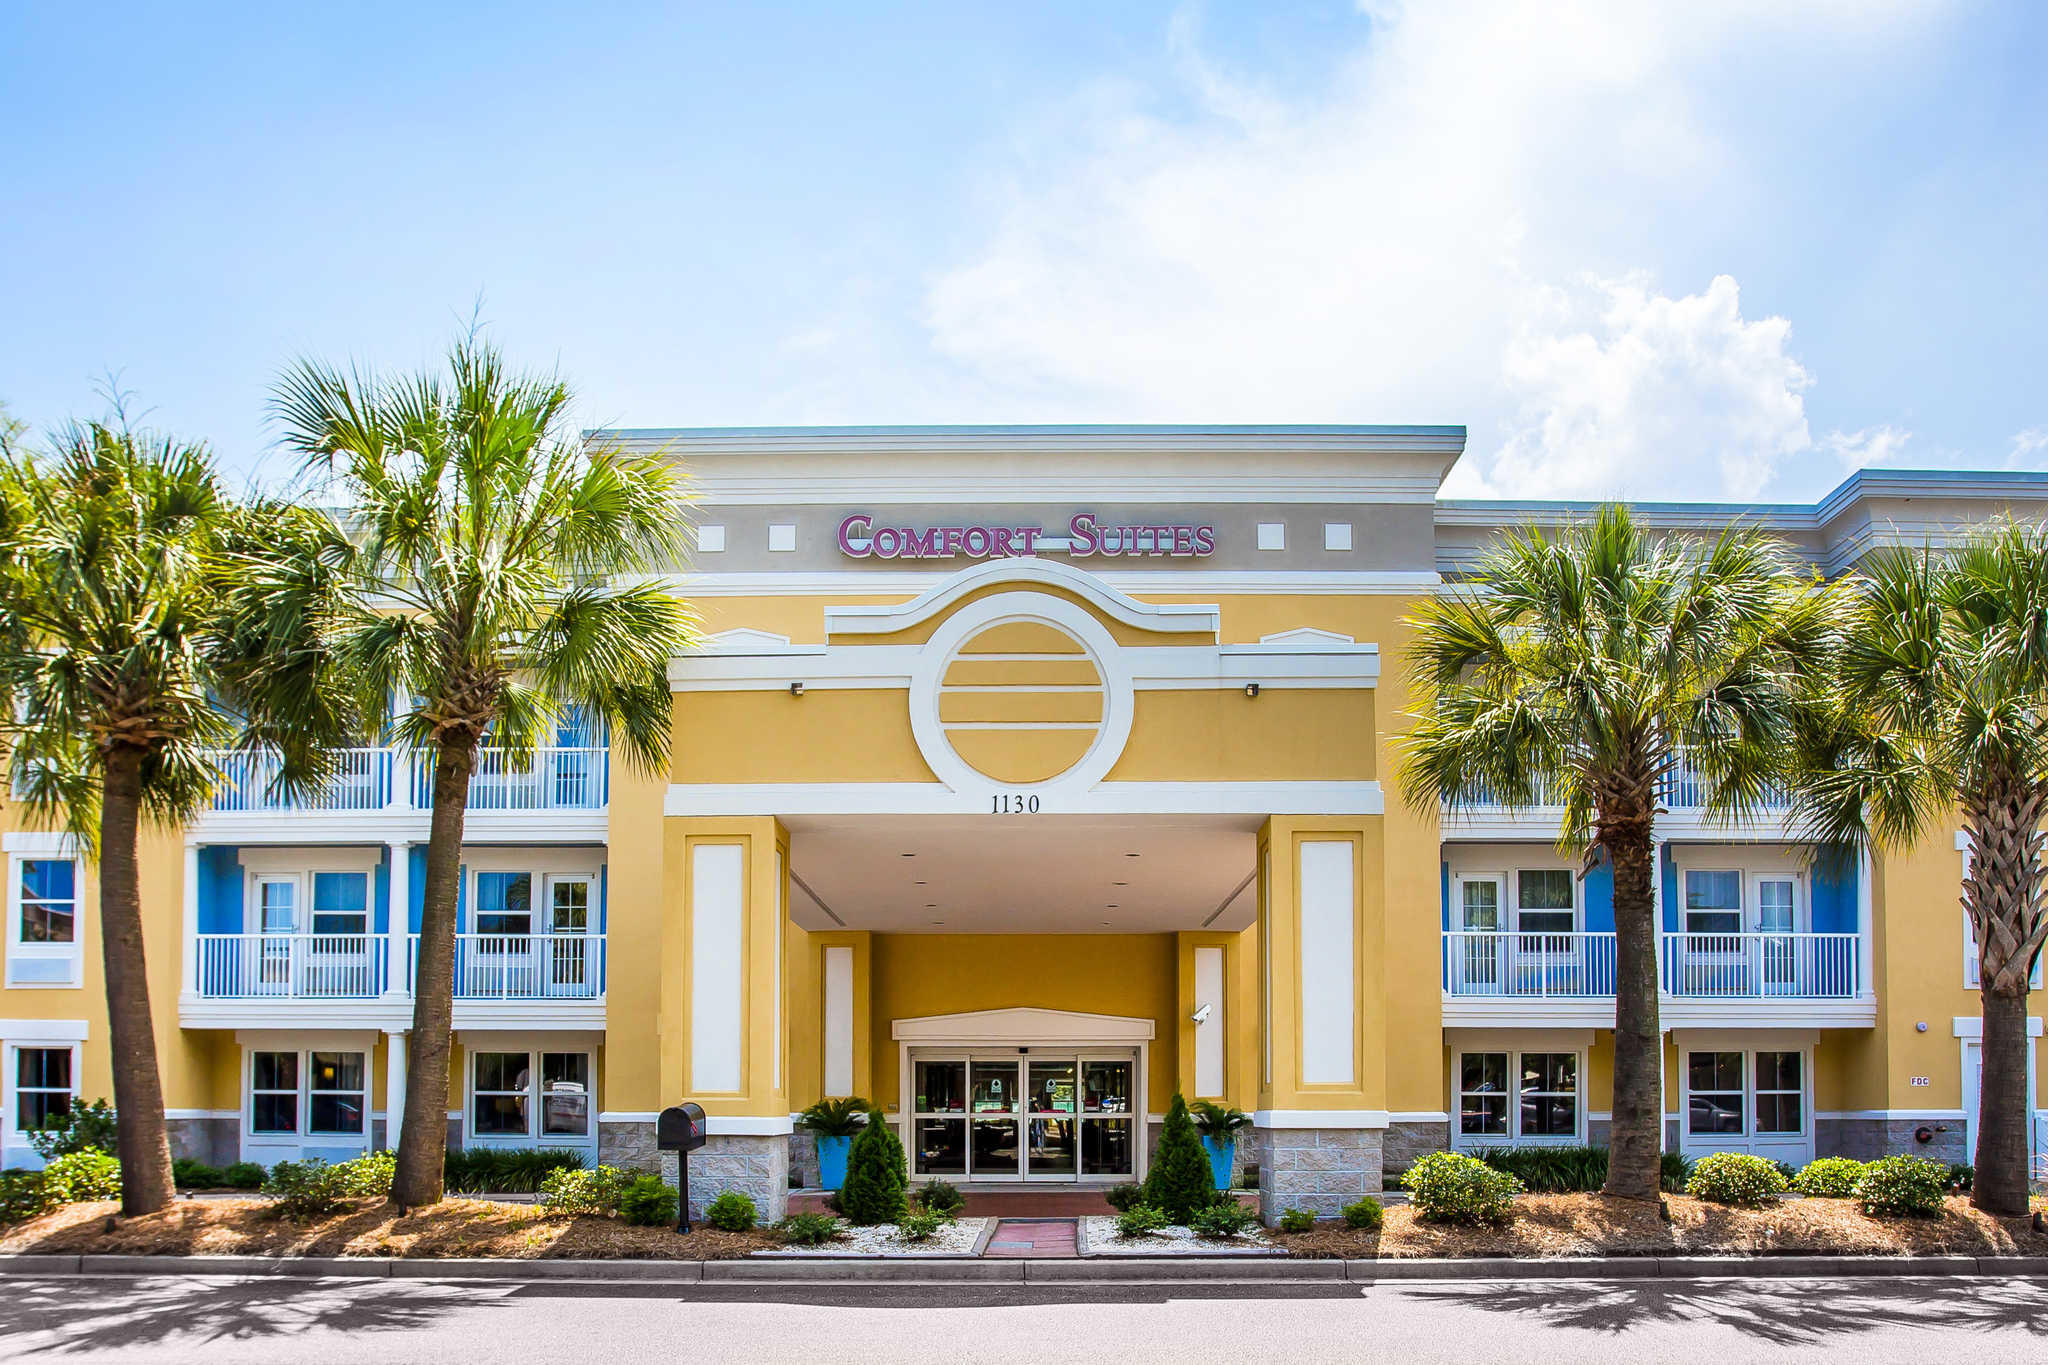 Comfort Suites At Isle Of Palms Connector Coupons near me ...